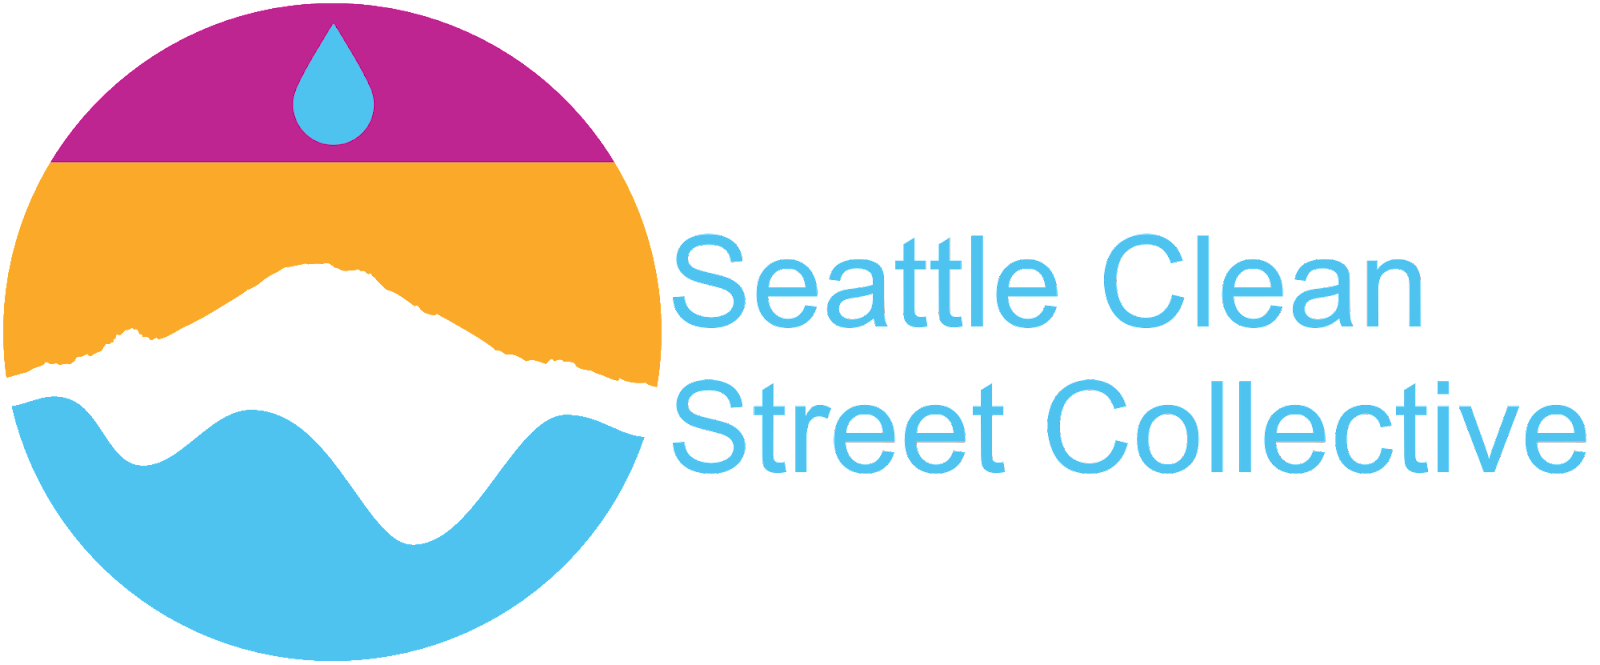 SeattleCleanStreetCollectiveLogoPNGText.png